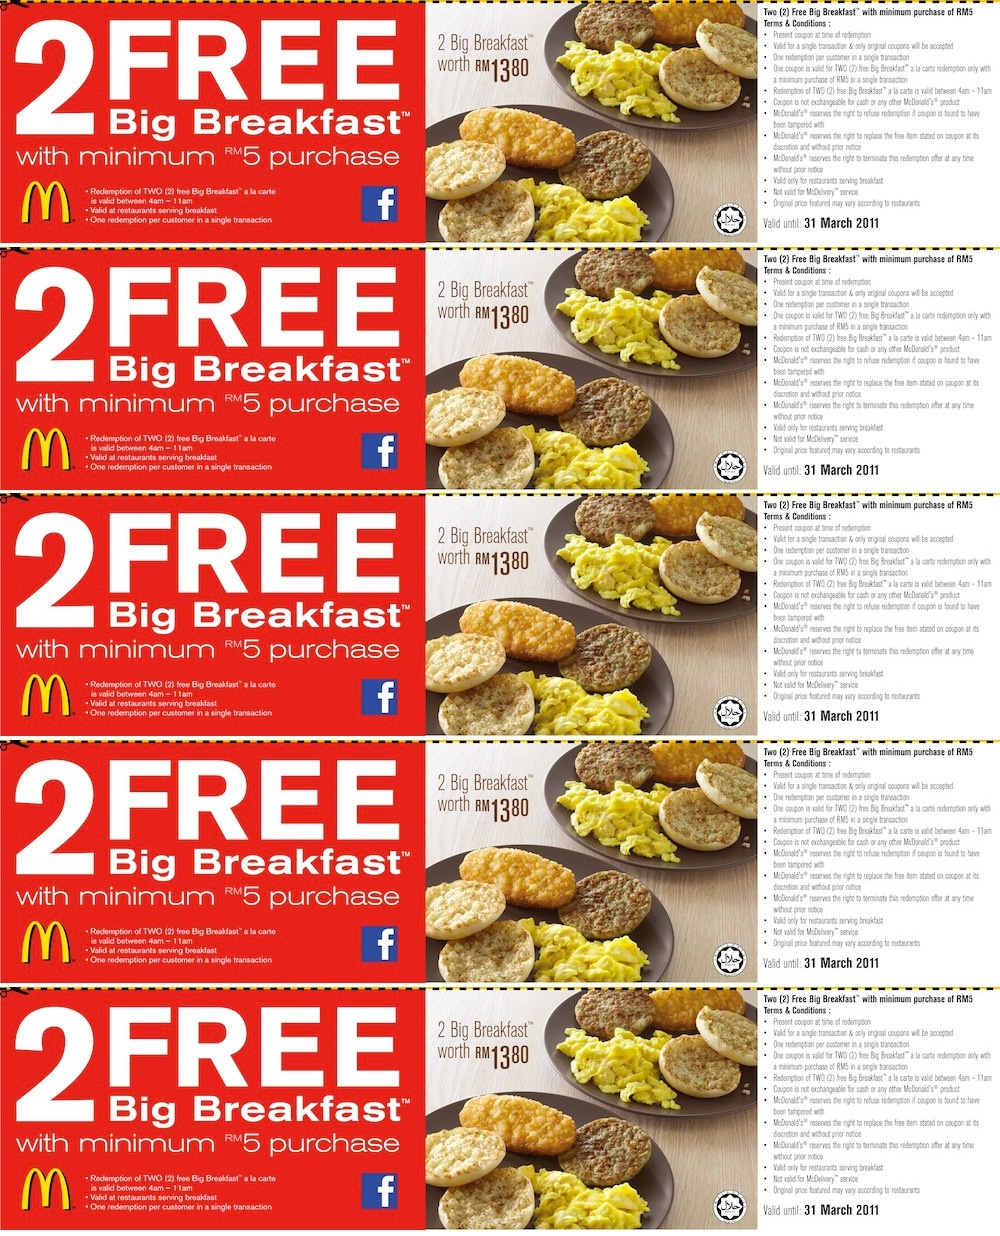 Mcdonalds Coupons Breakfast 2019 - Free Printable Mcdonalds Coupons Online